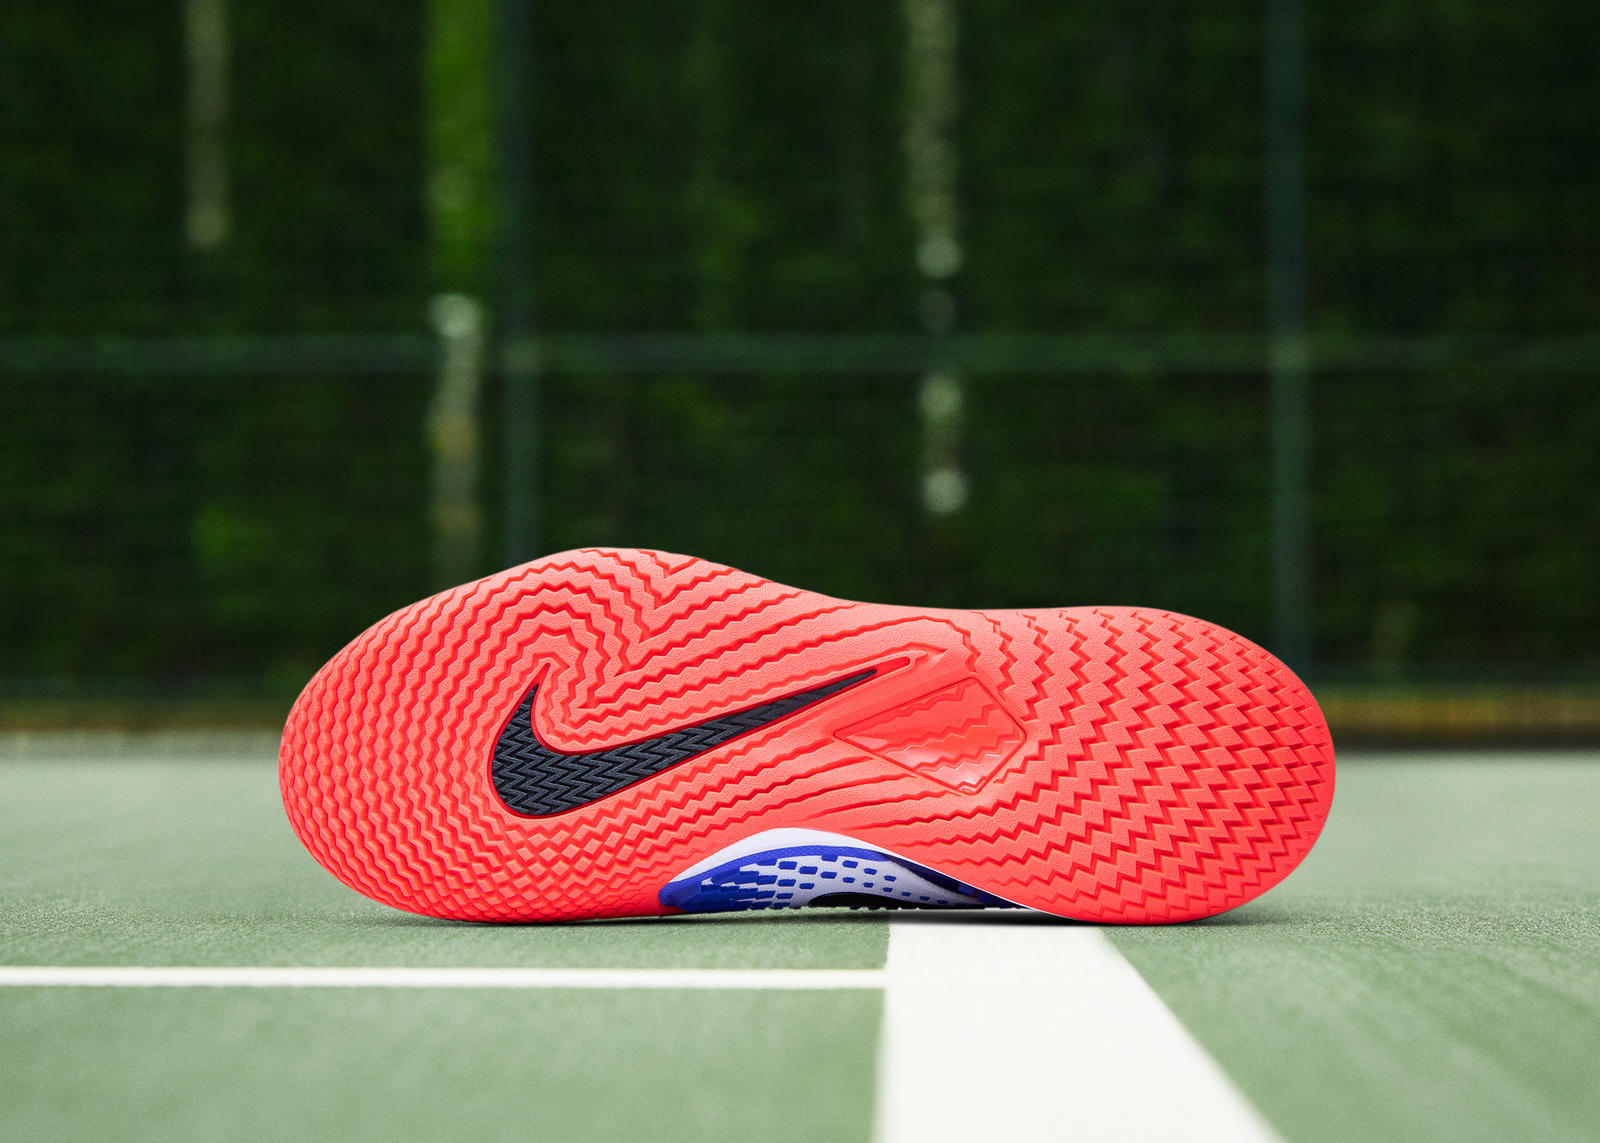 NikeCourt Zoom Vapor Cage 4 Official Images and Release Date 7